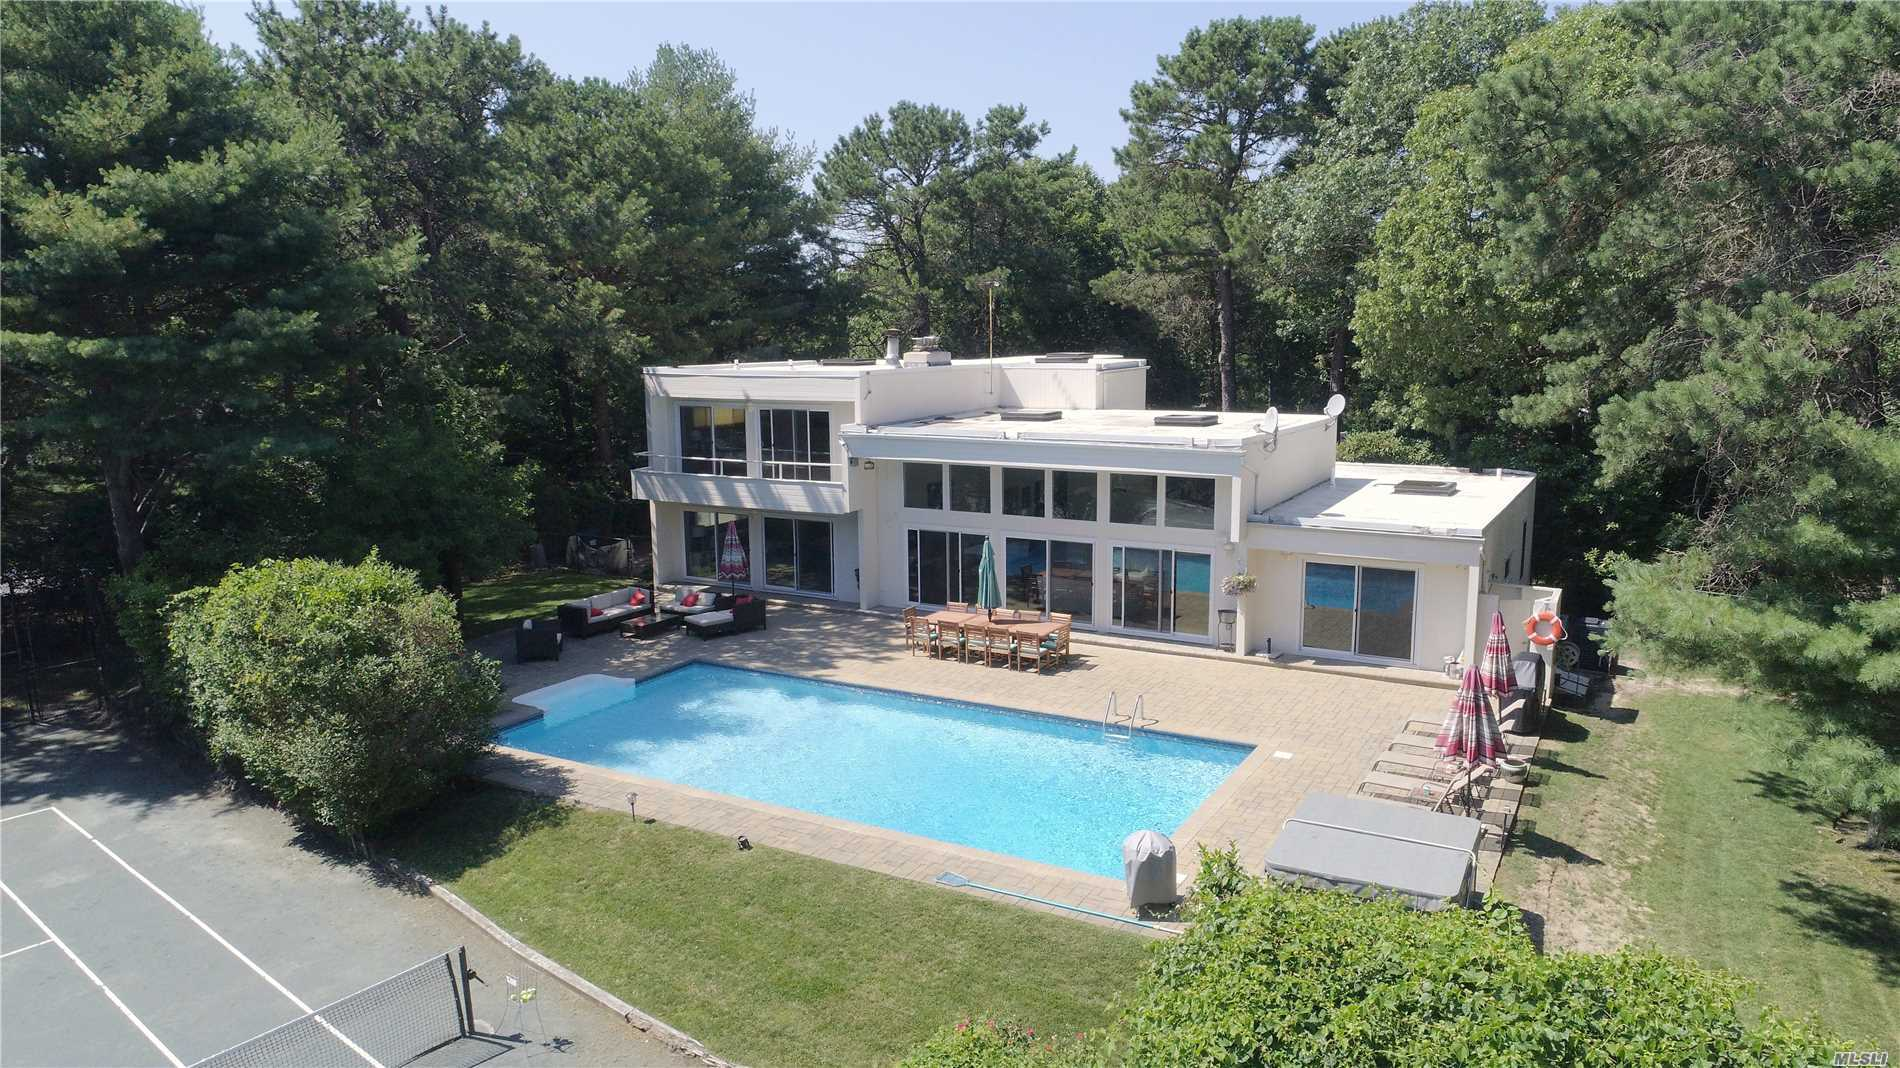 Updated & Well Appointed Five Bedroom, Three & Half Bath Contemporary Sited On One Acre With Har-Tru Tennis Court, Large In-Ground Swimming Pool & Access To All Southampton Town Ocean Beaches Makes For A Memorable Summer Rental Experience!